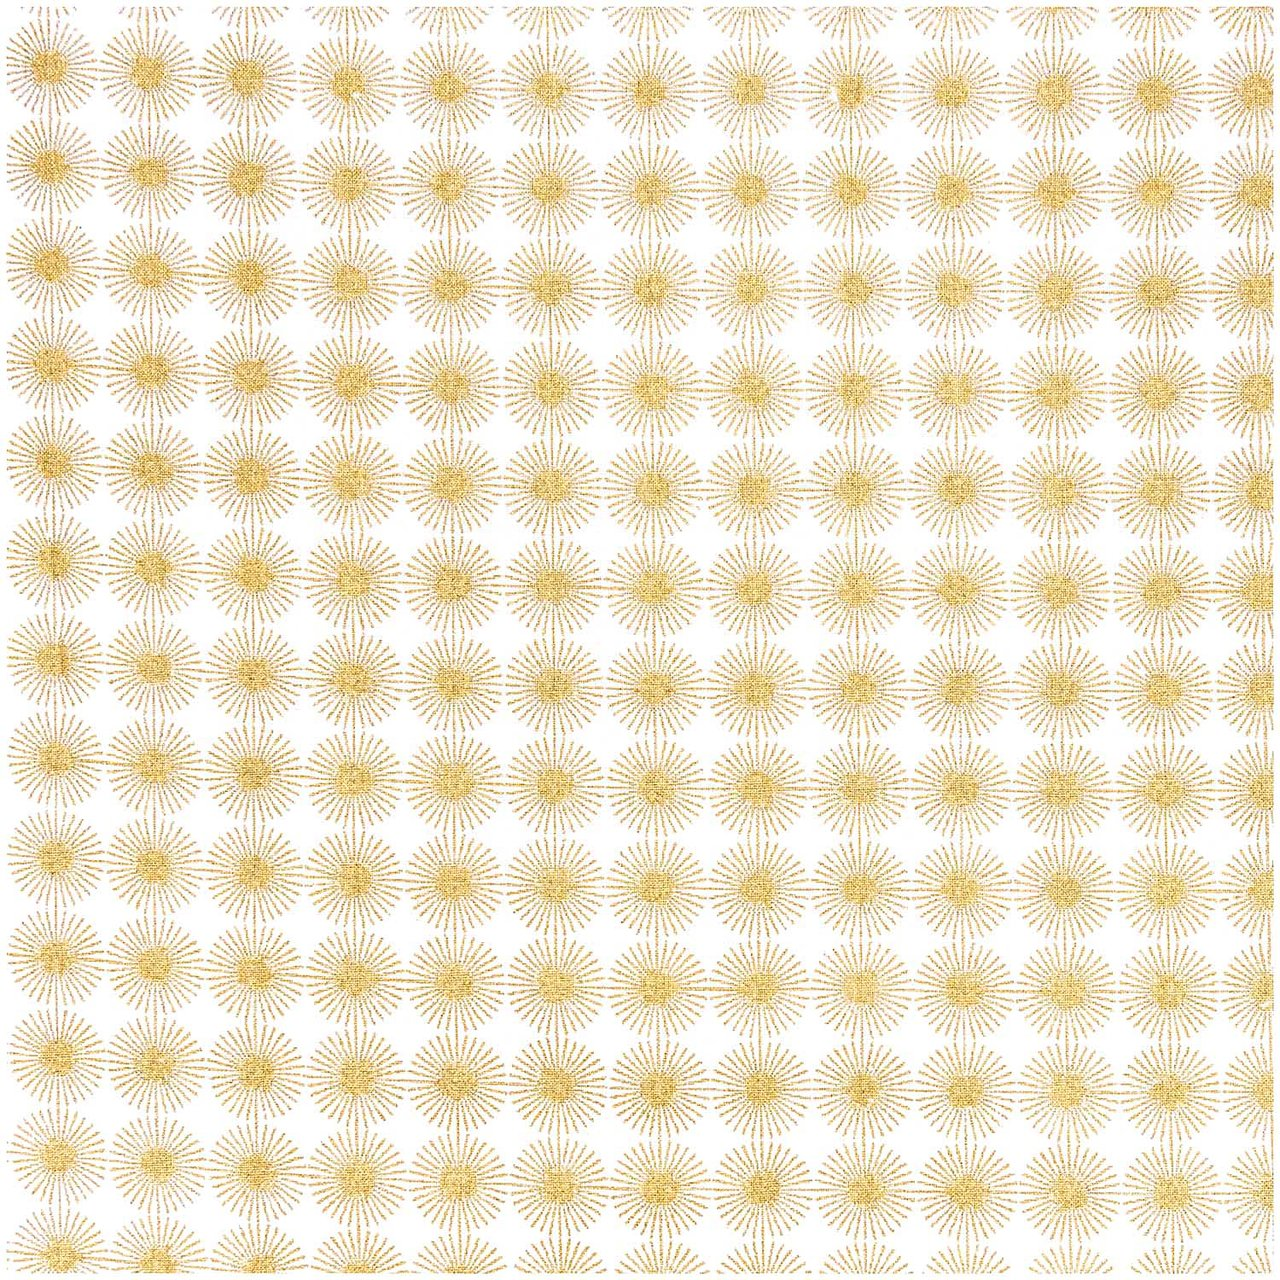 Stoff Gold Rico Stoff Rosette Gold 50x70cm